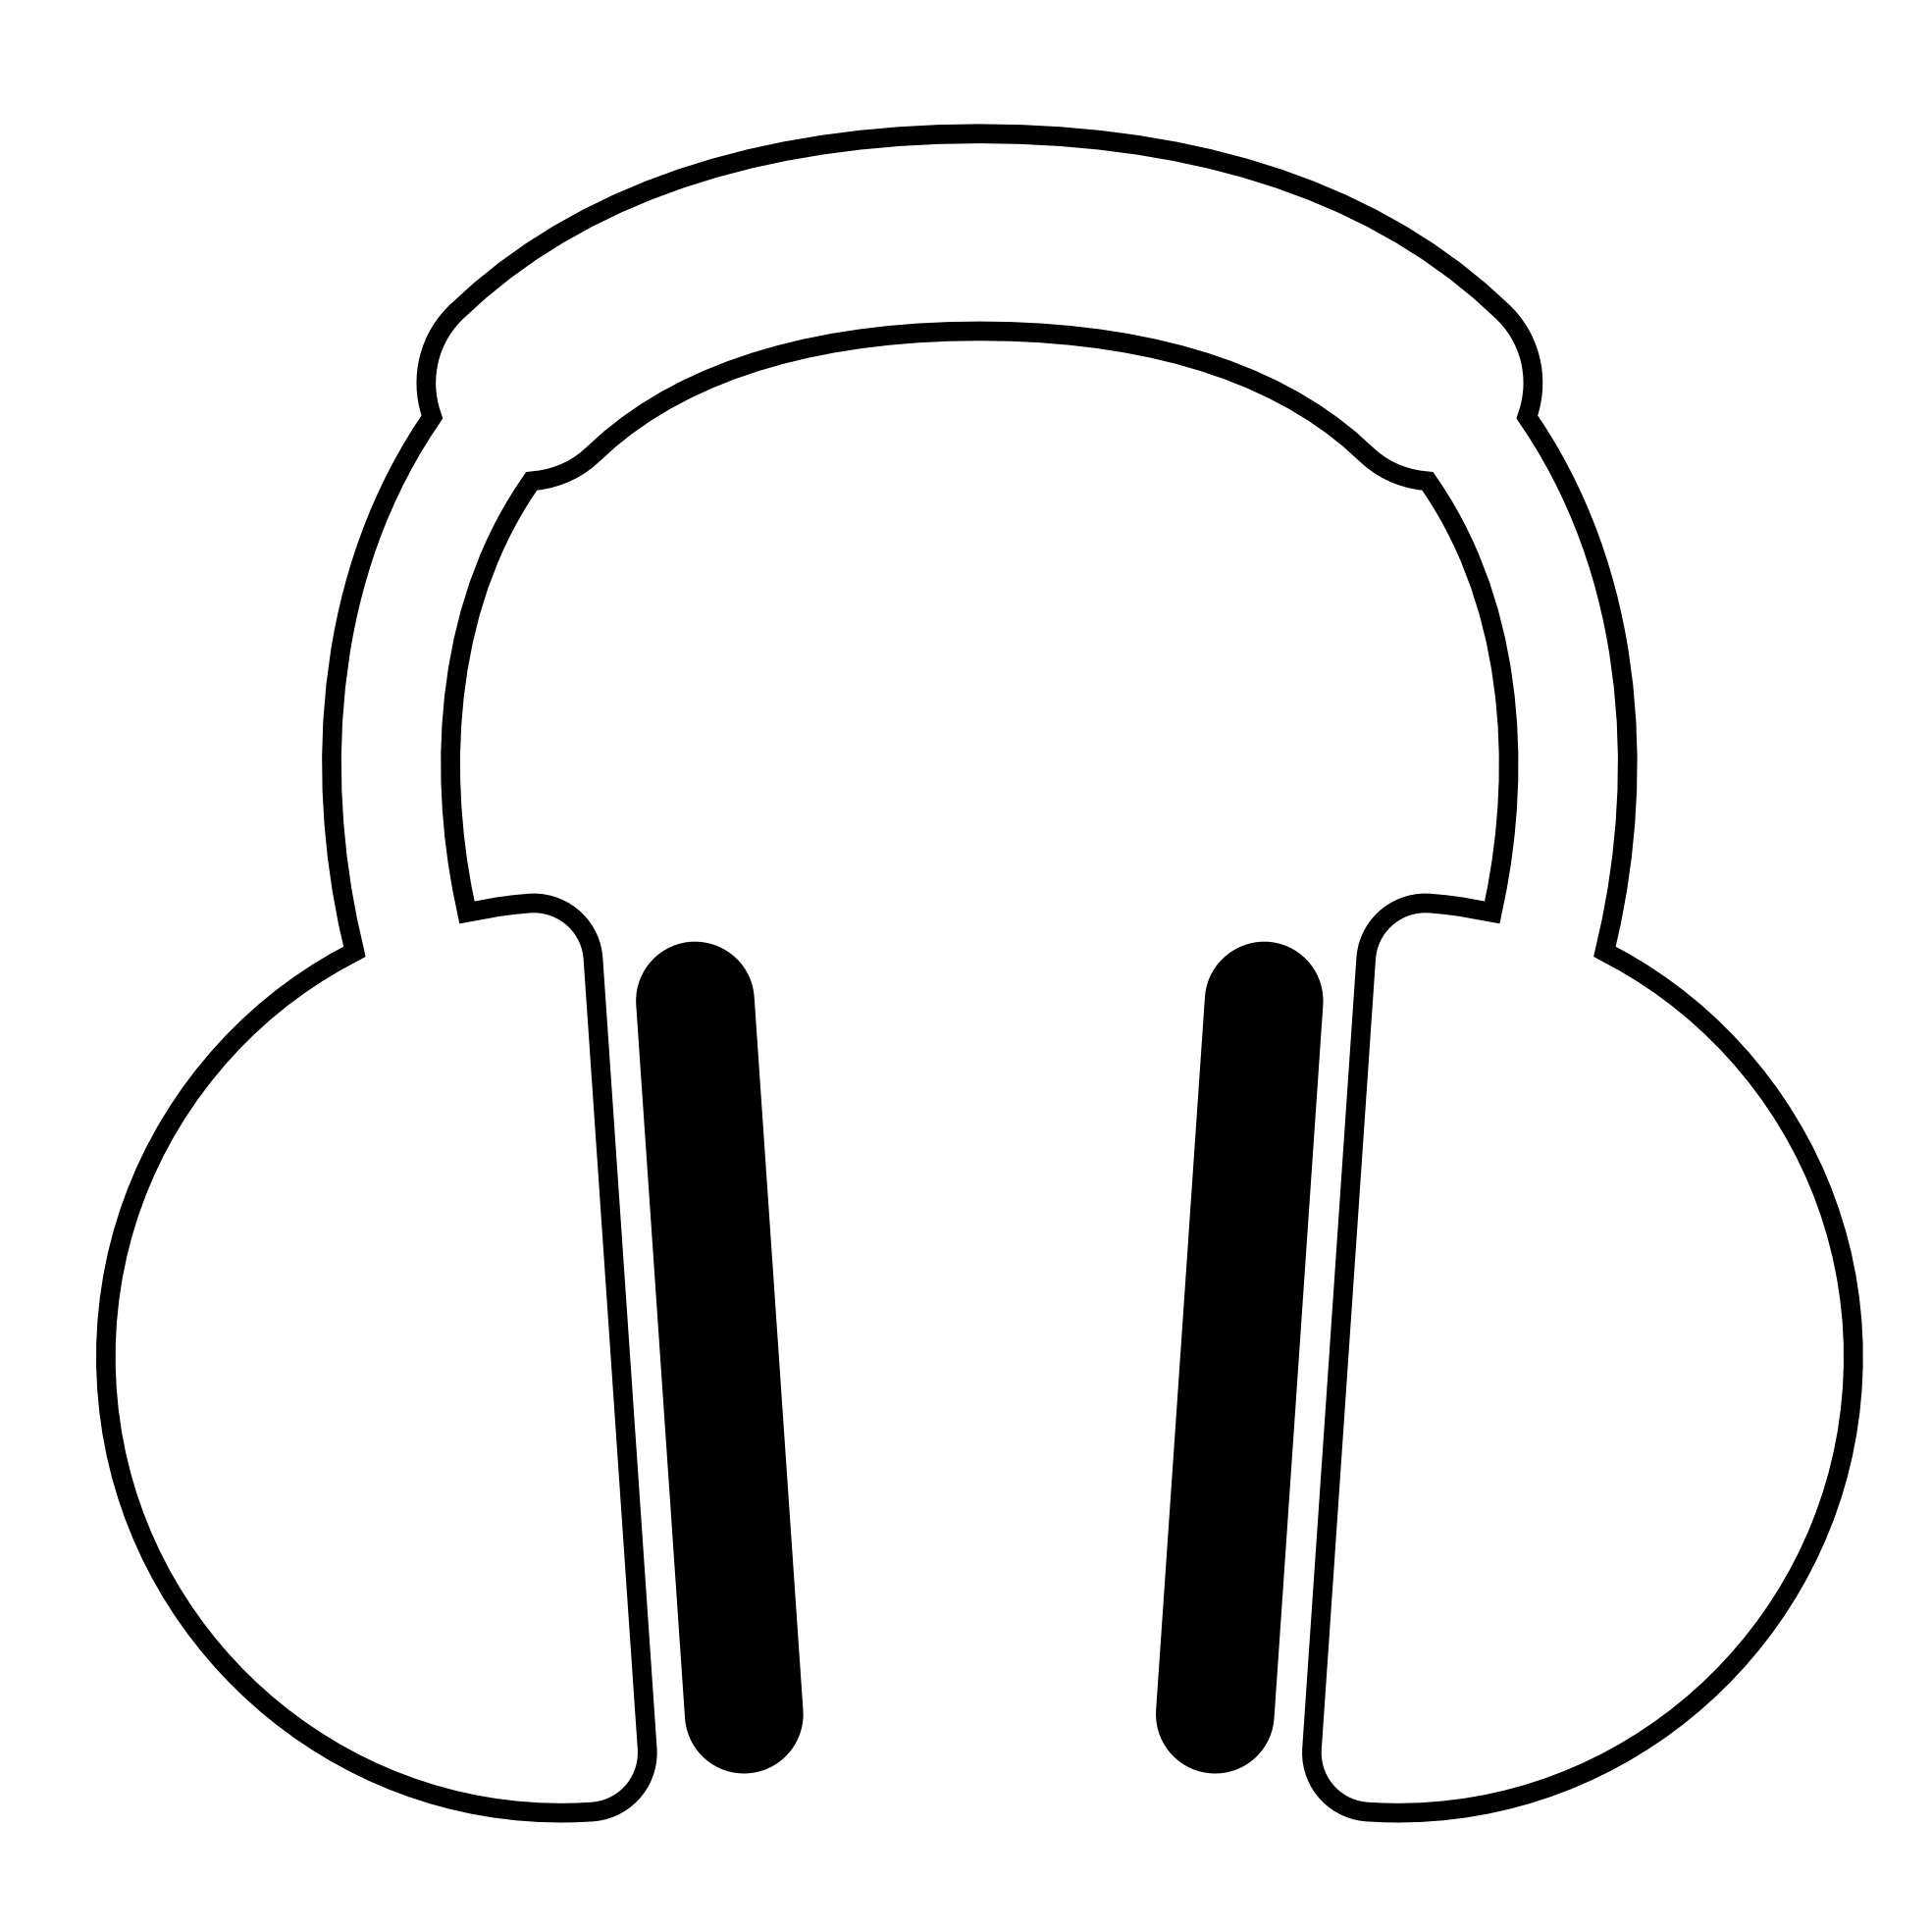 Line Art Headphones : People with headphones drawing clipart best